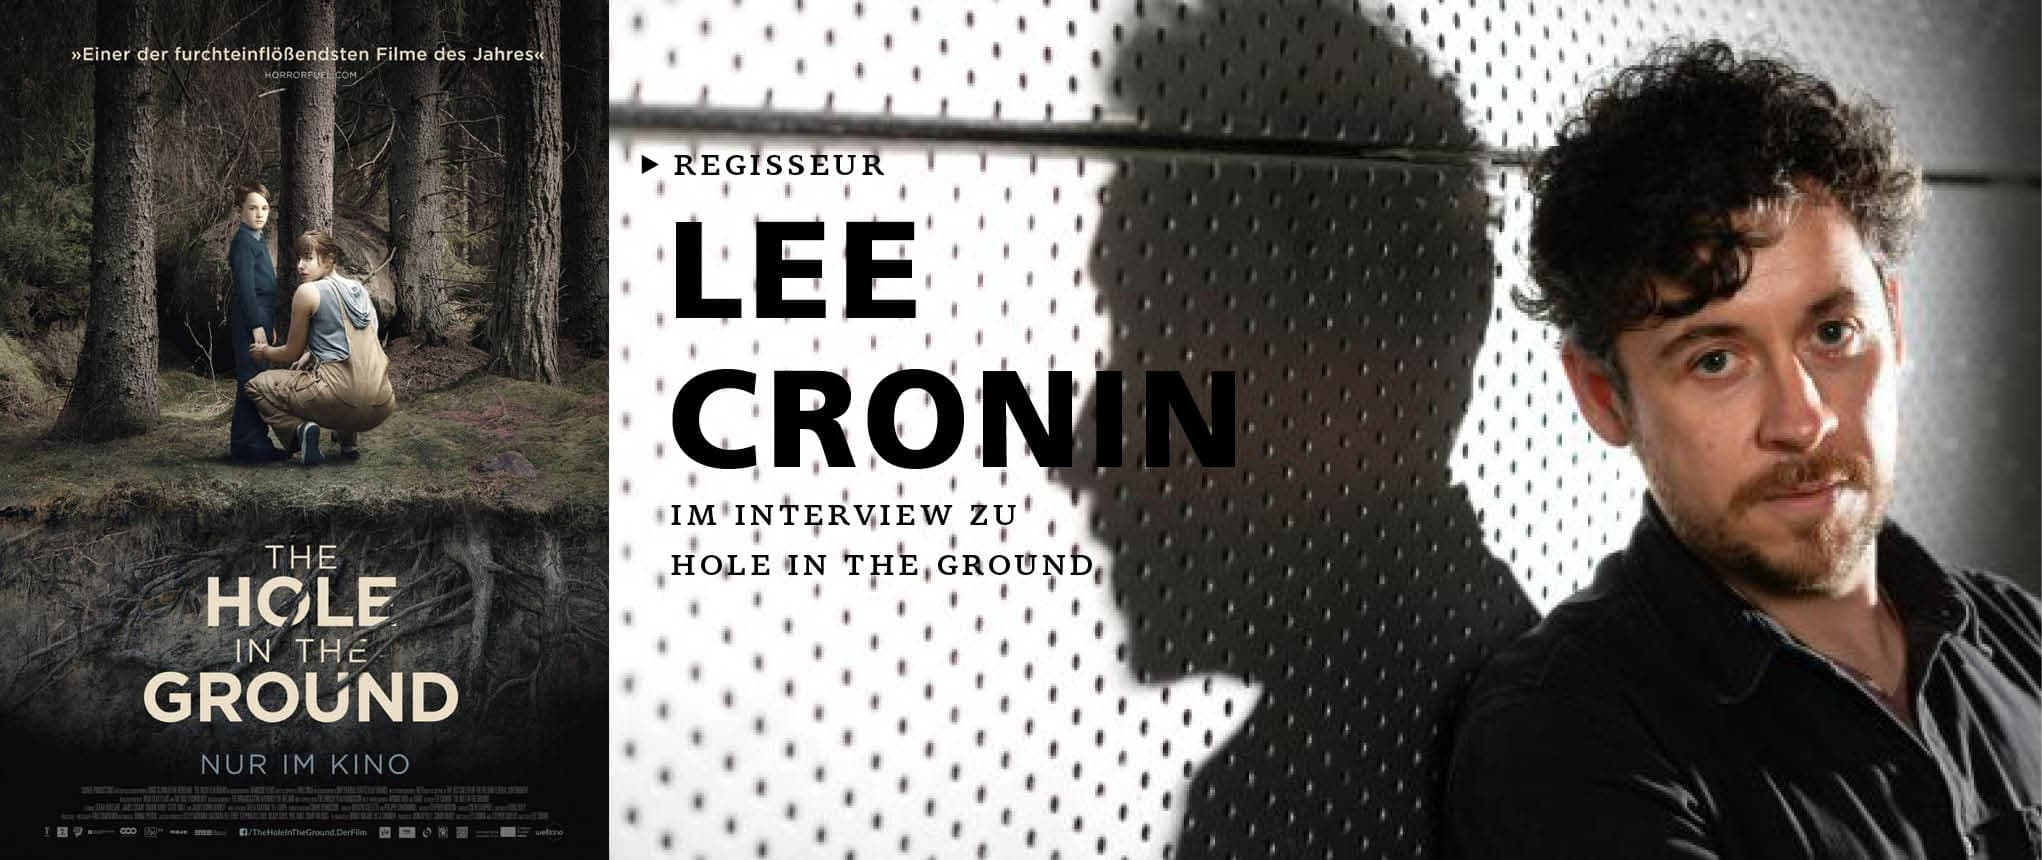 Im Gespräch mit THE HOLE IN THE GROUND-Regisseur Lee Cronin